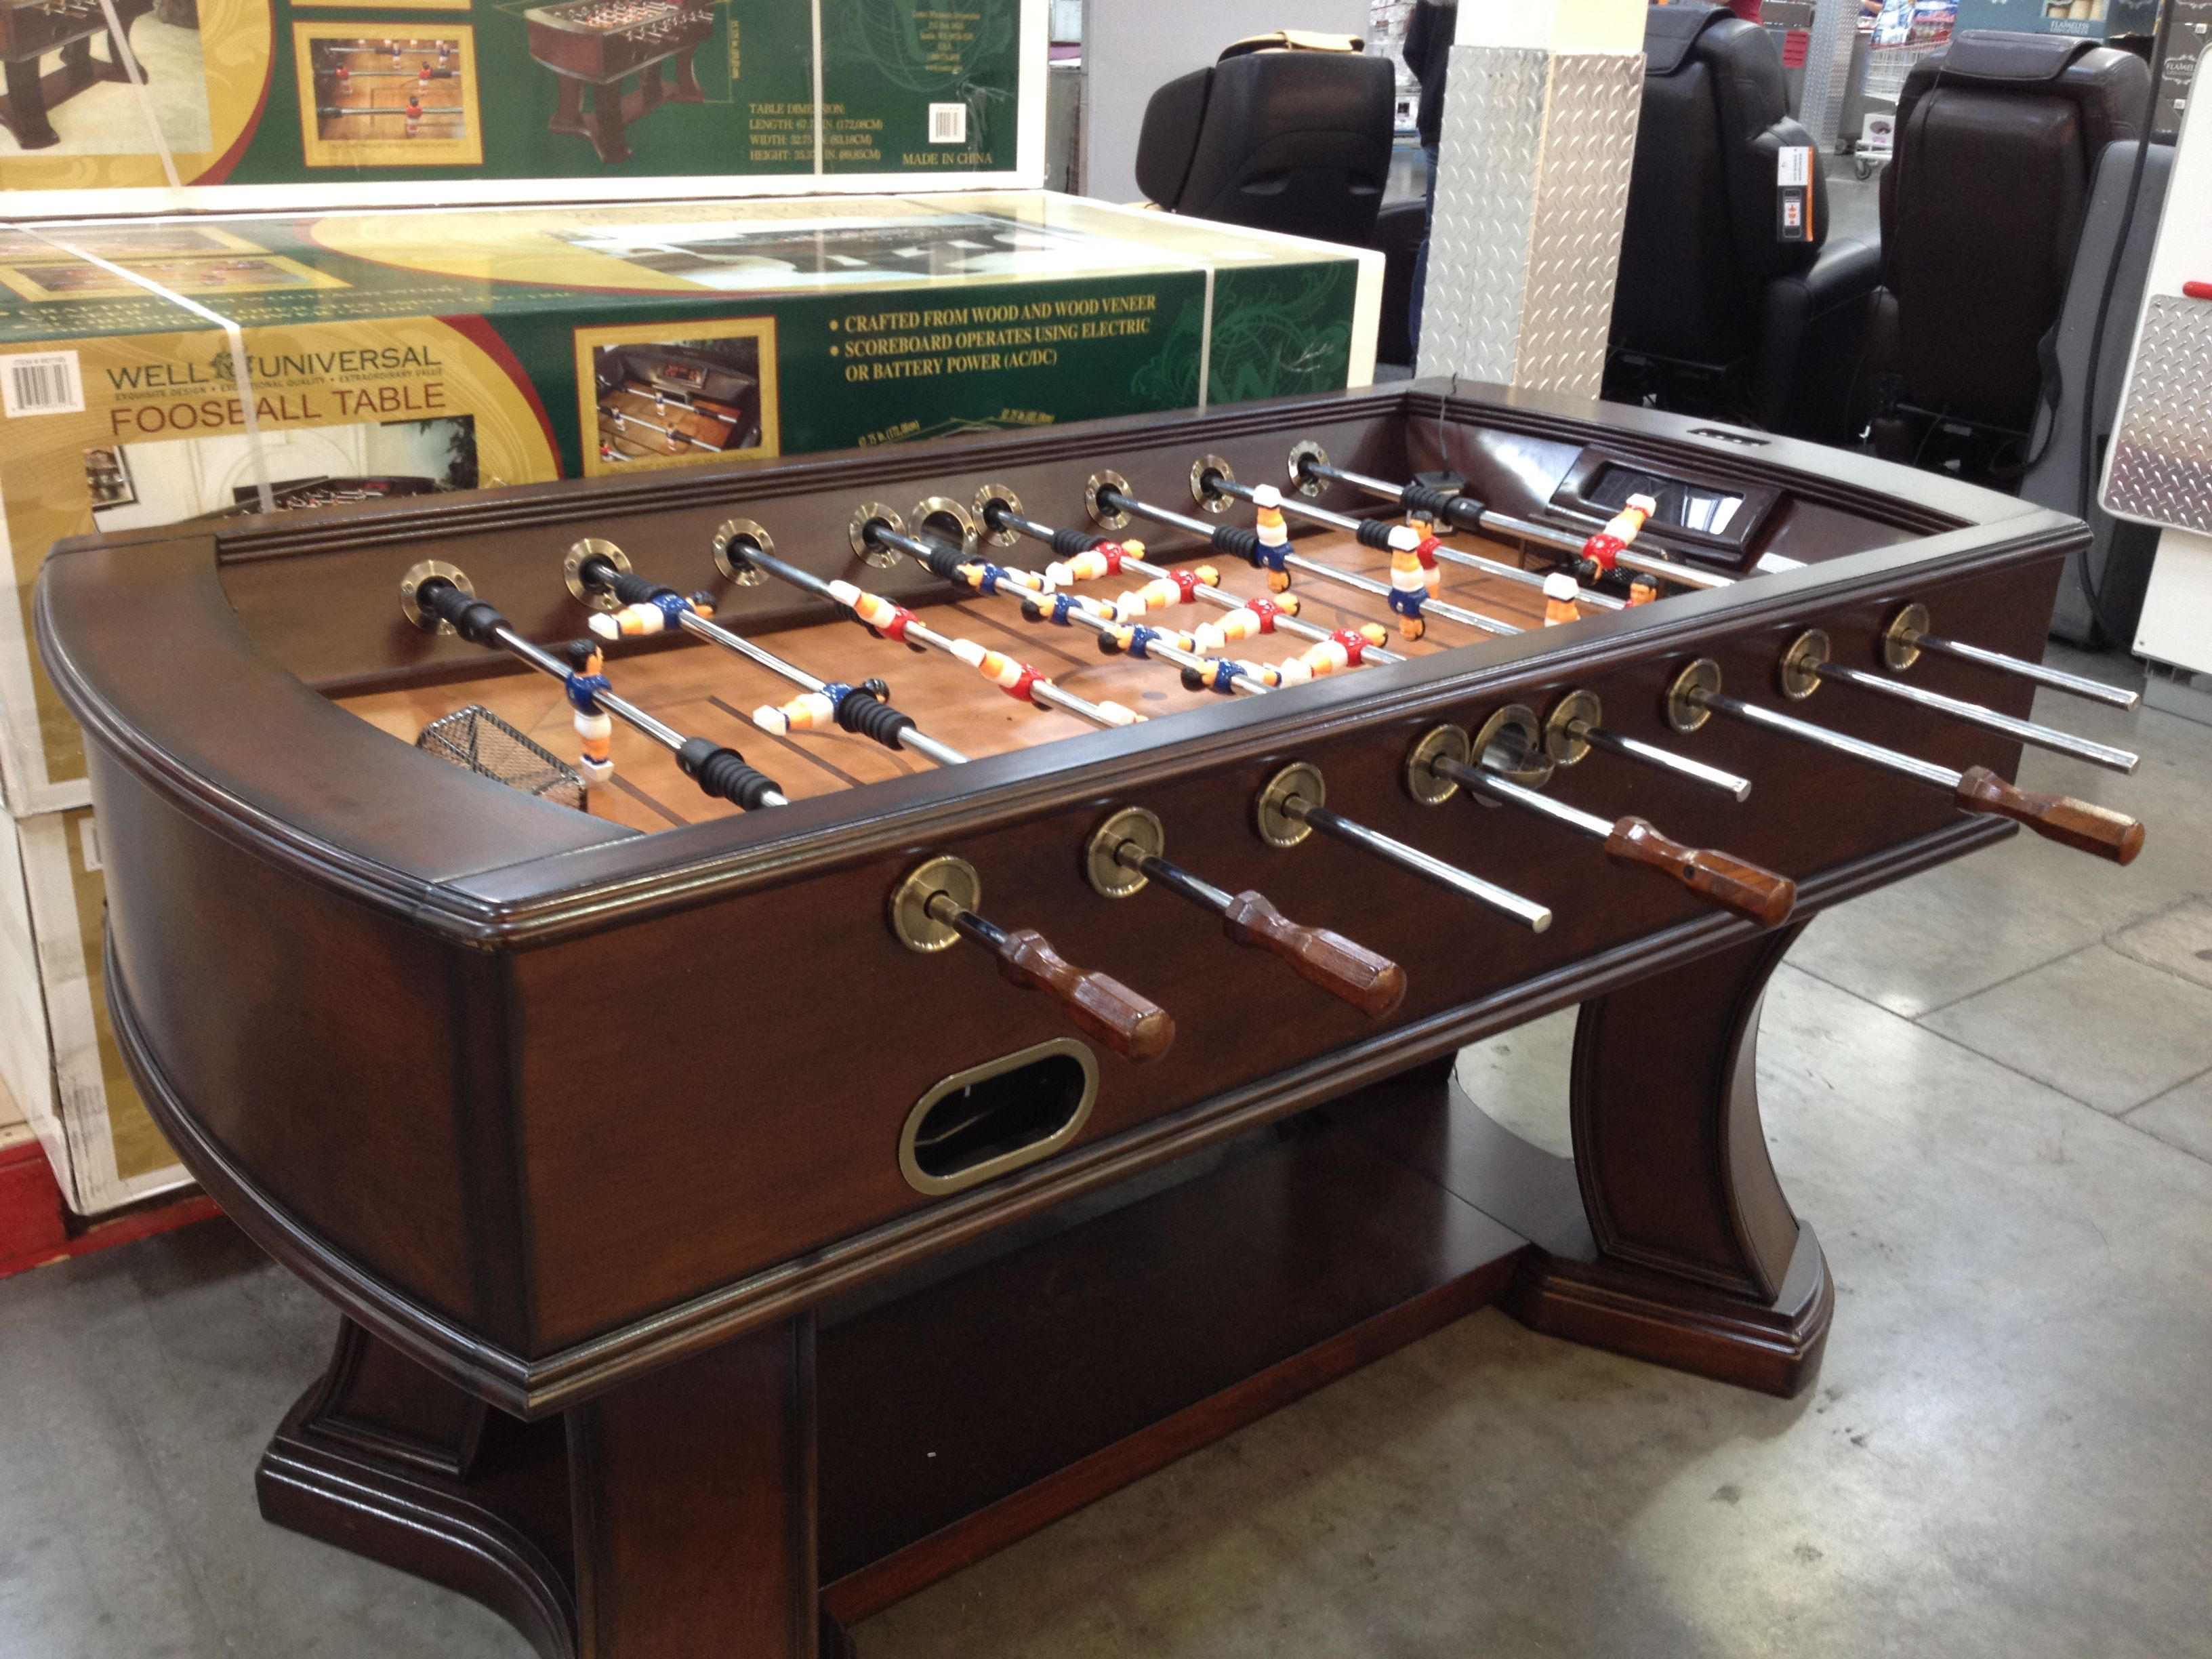 Costco Tables And Chairs Foosball Table With Electronic Scoring 450 At Costco Our